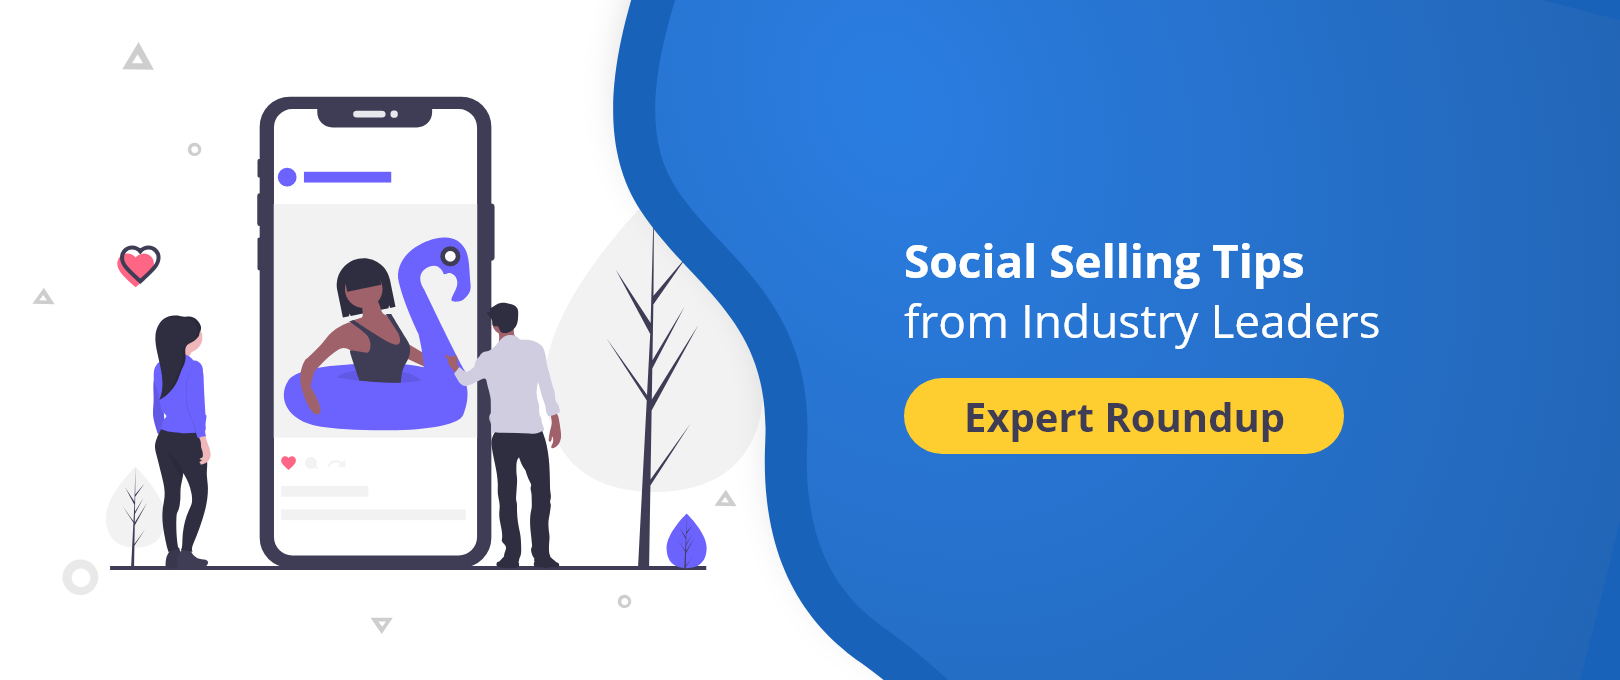 Social Selling Tips from Industry Leaders Expert Roundup